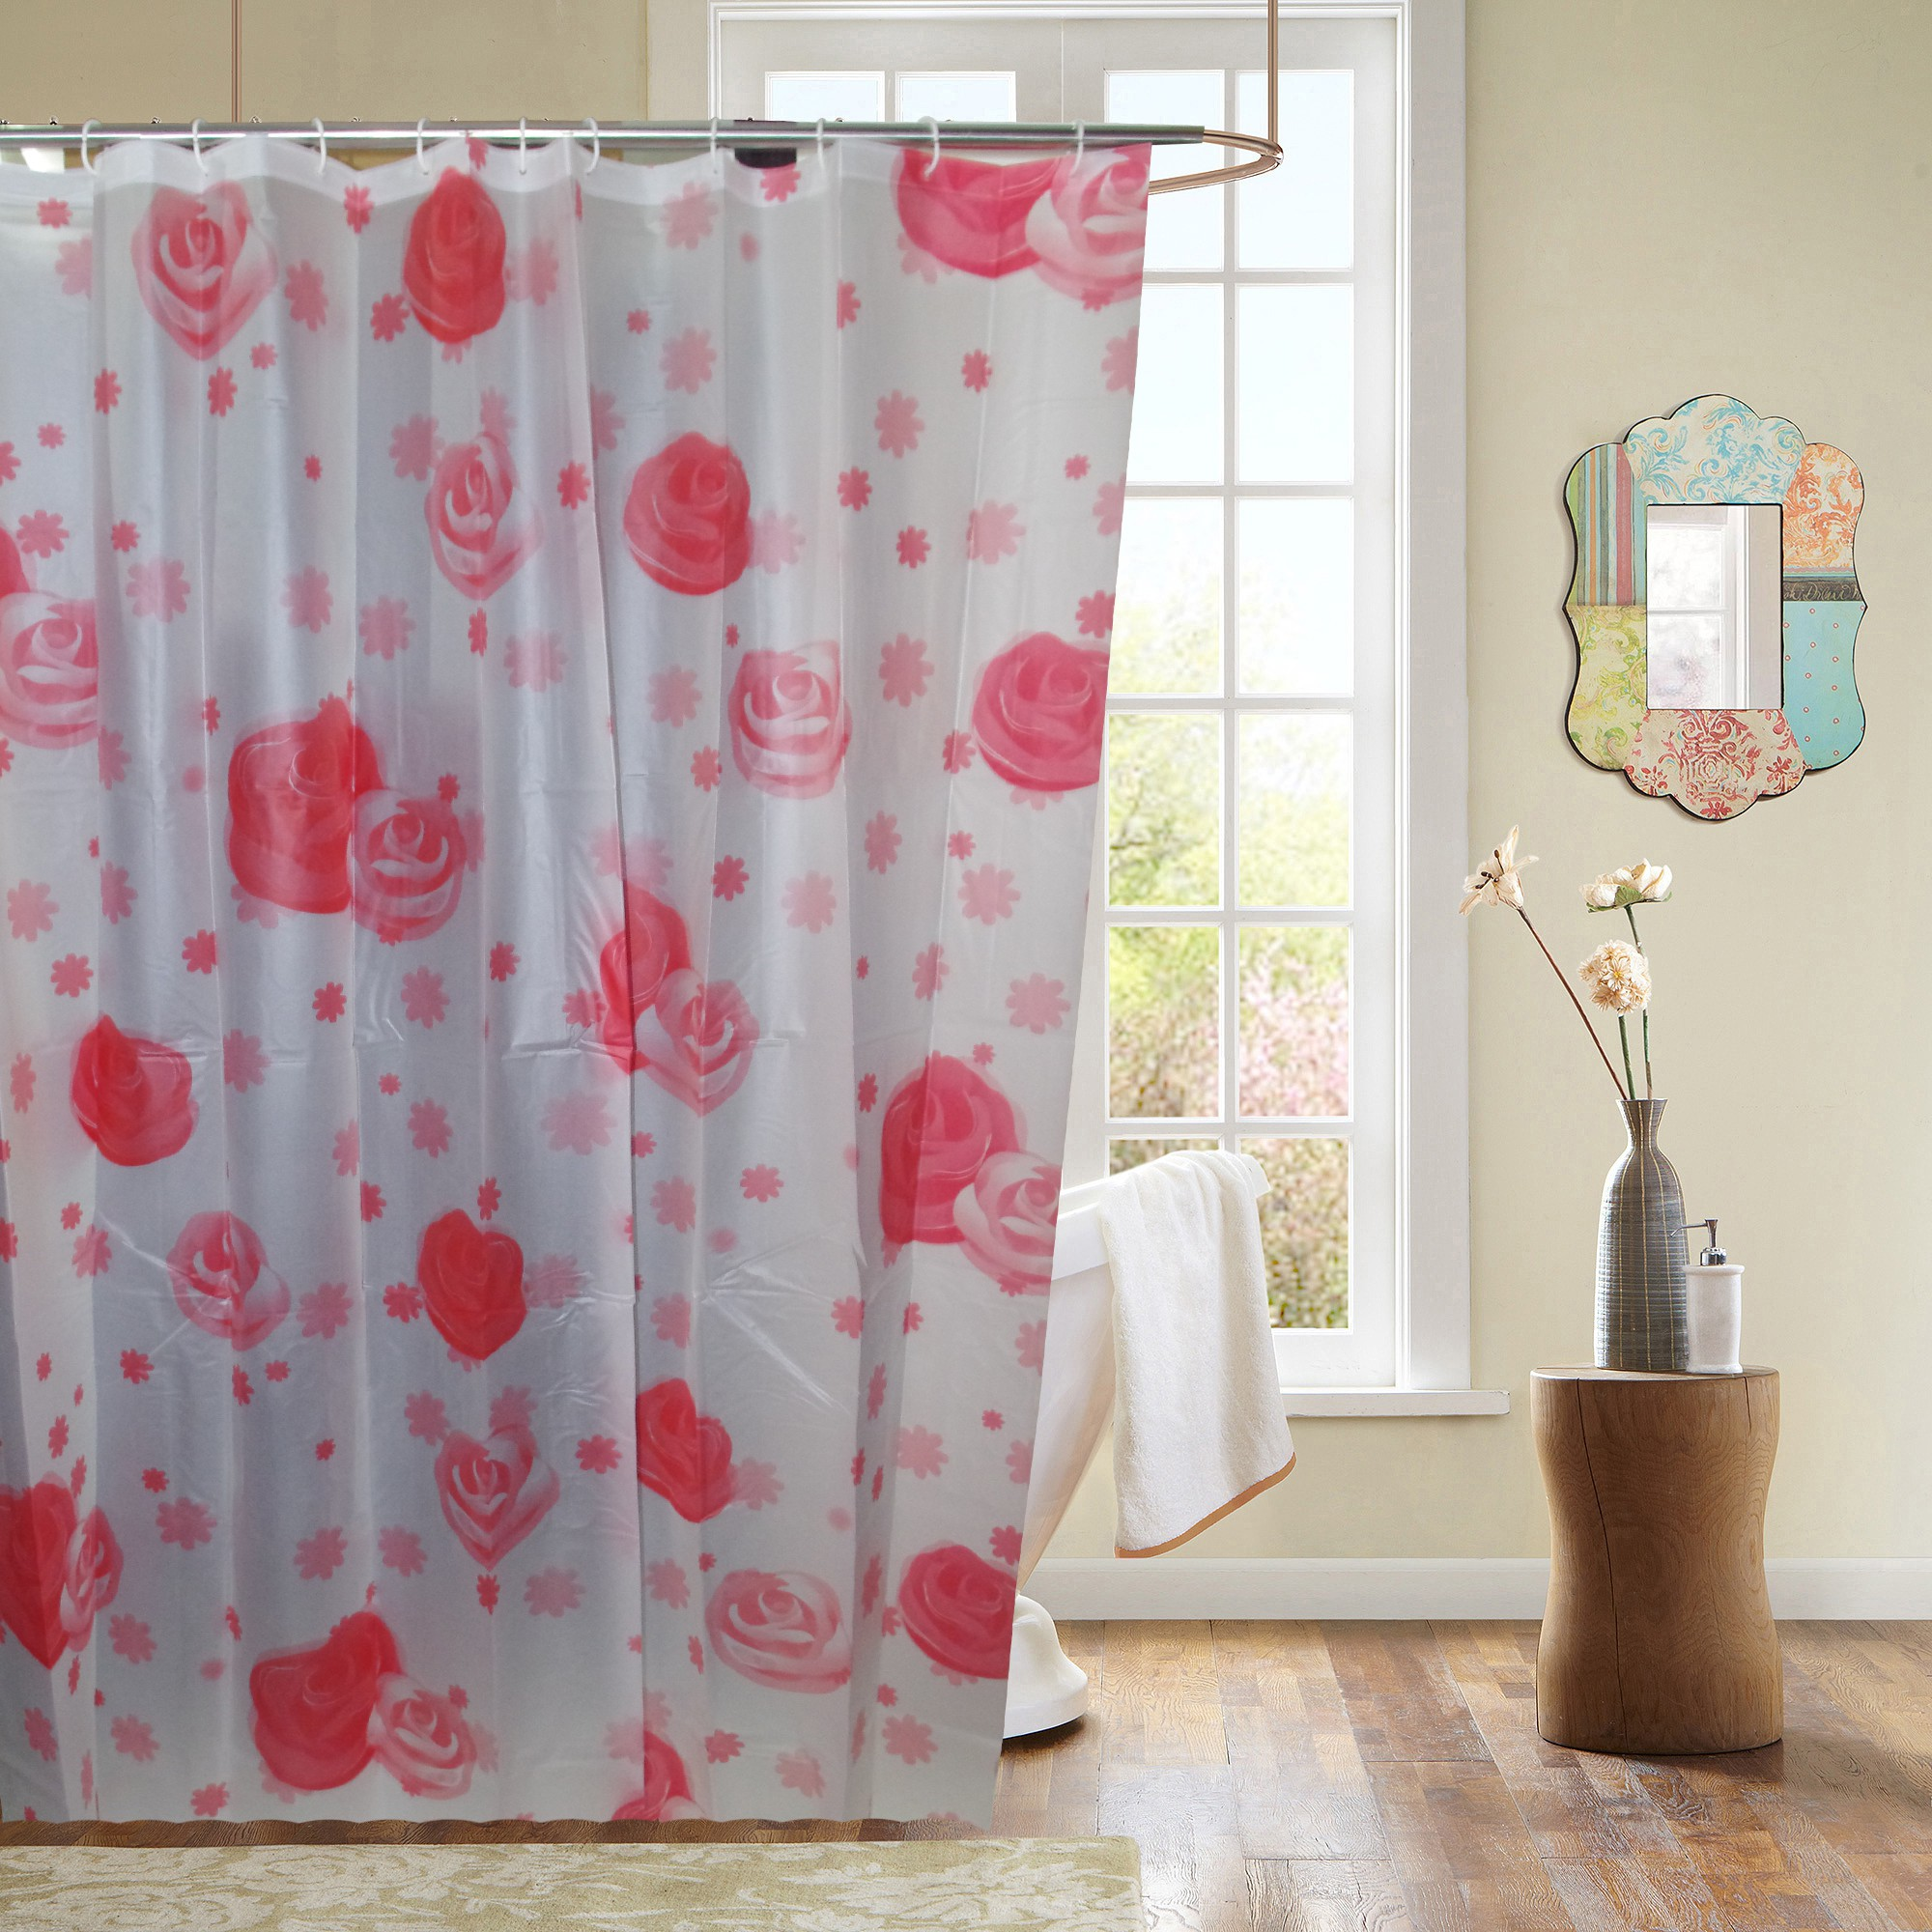 Gran Ethylene Vinyl Acetate Multicolor Abstract Curtain Shower